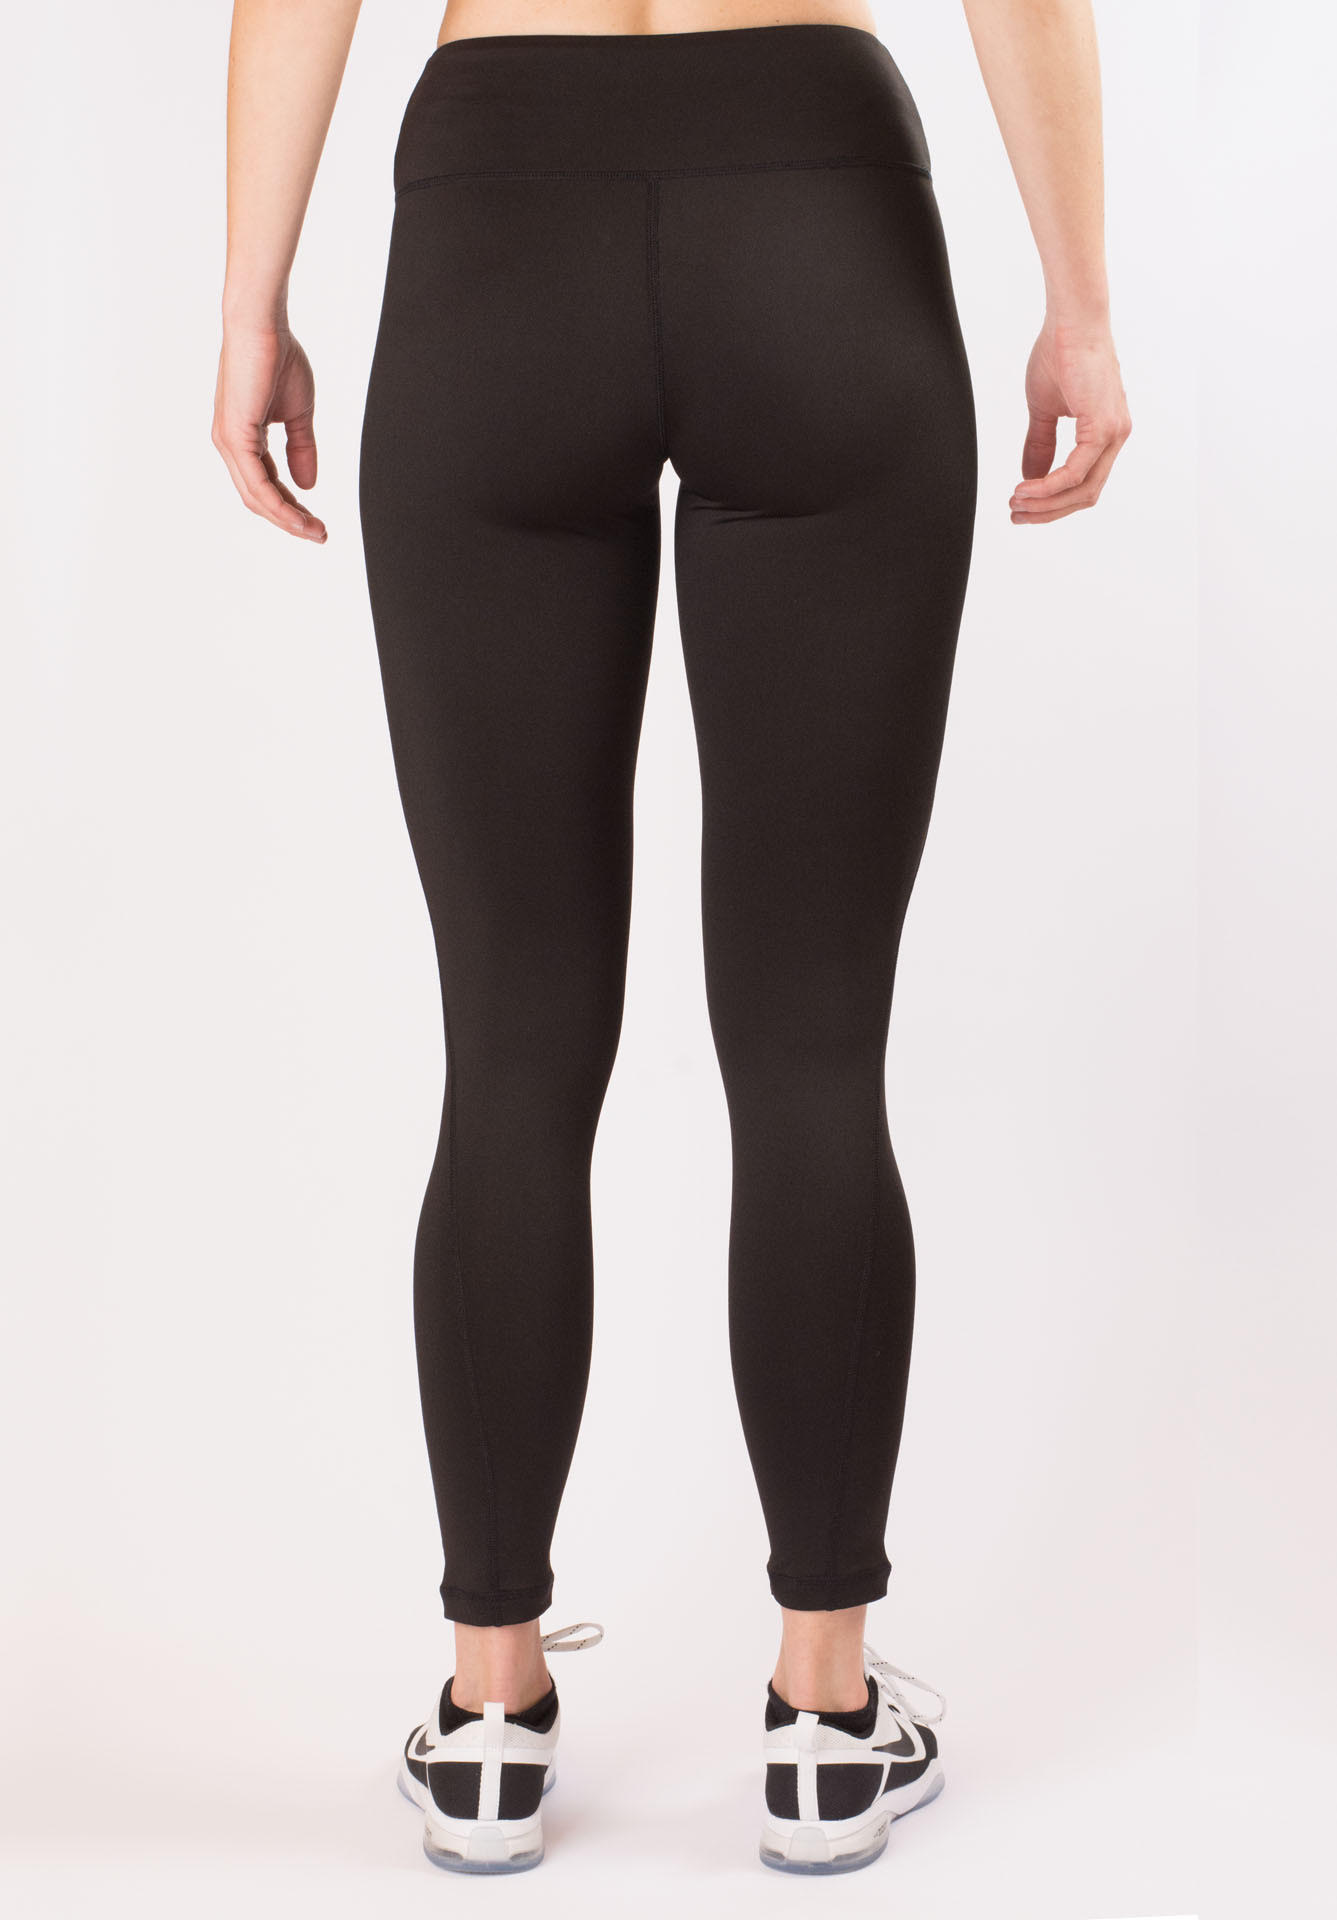 PoS187703-9999_Black_POWER of Sweden Compression Leggings baksida